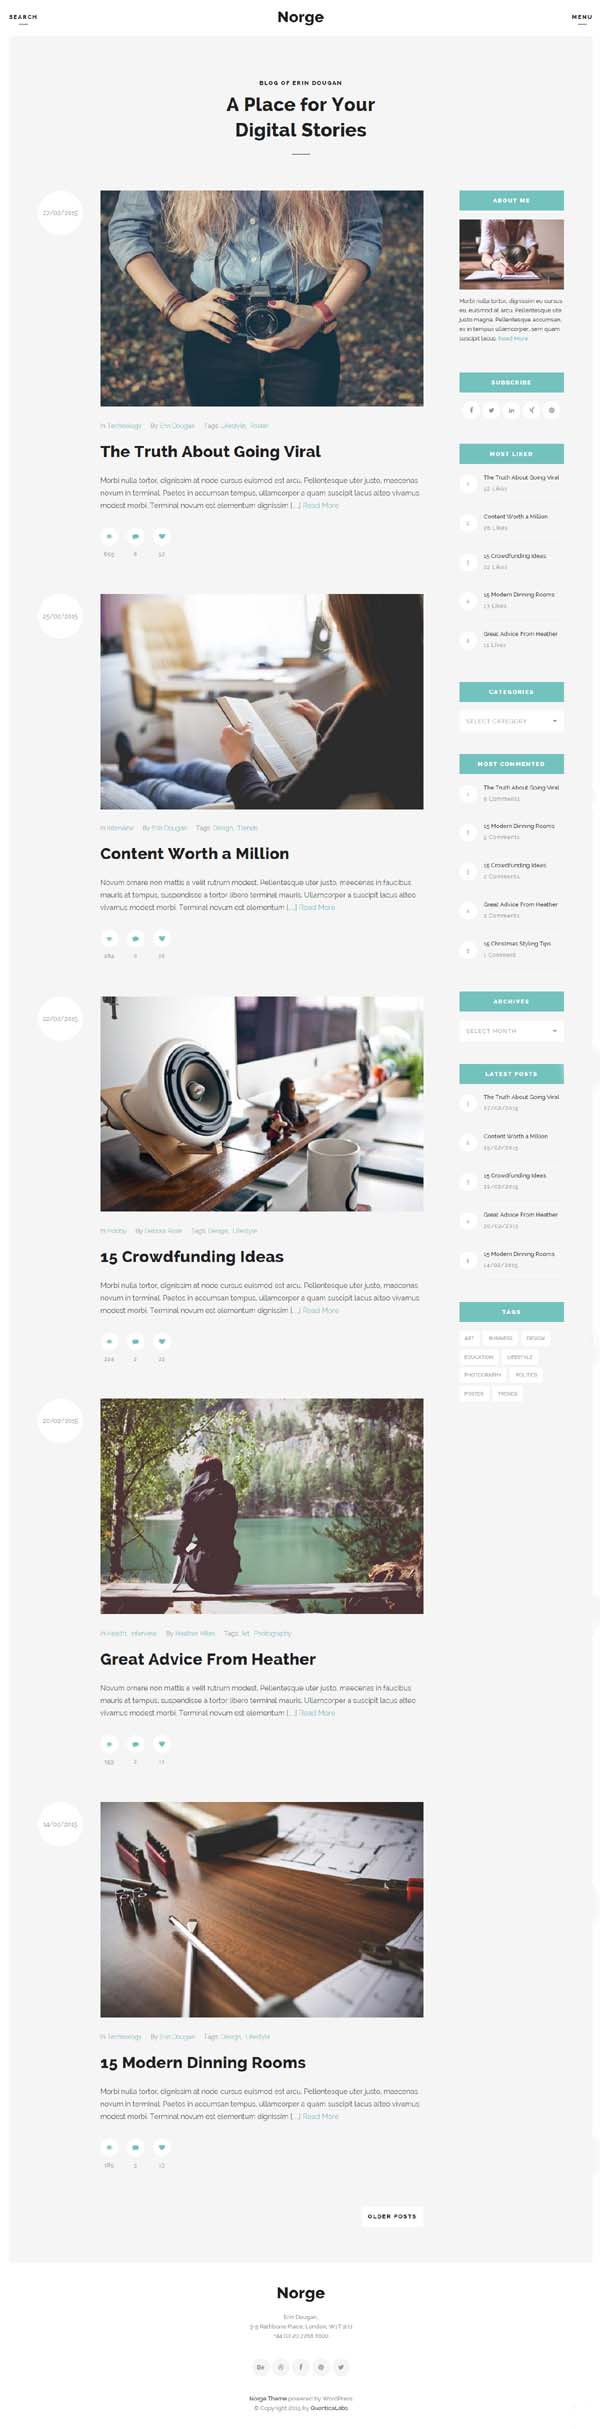 Norge – Responsive Blog WordPress Theme